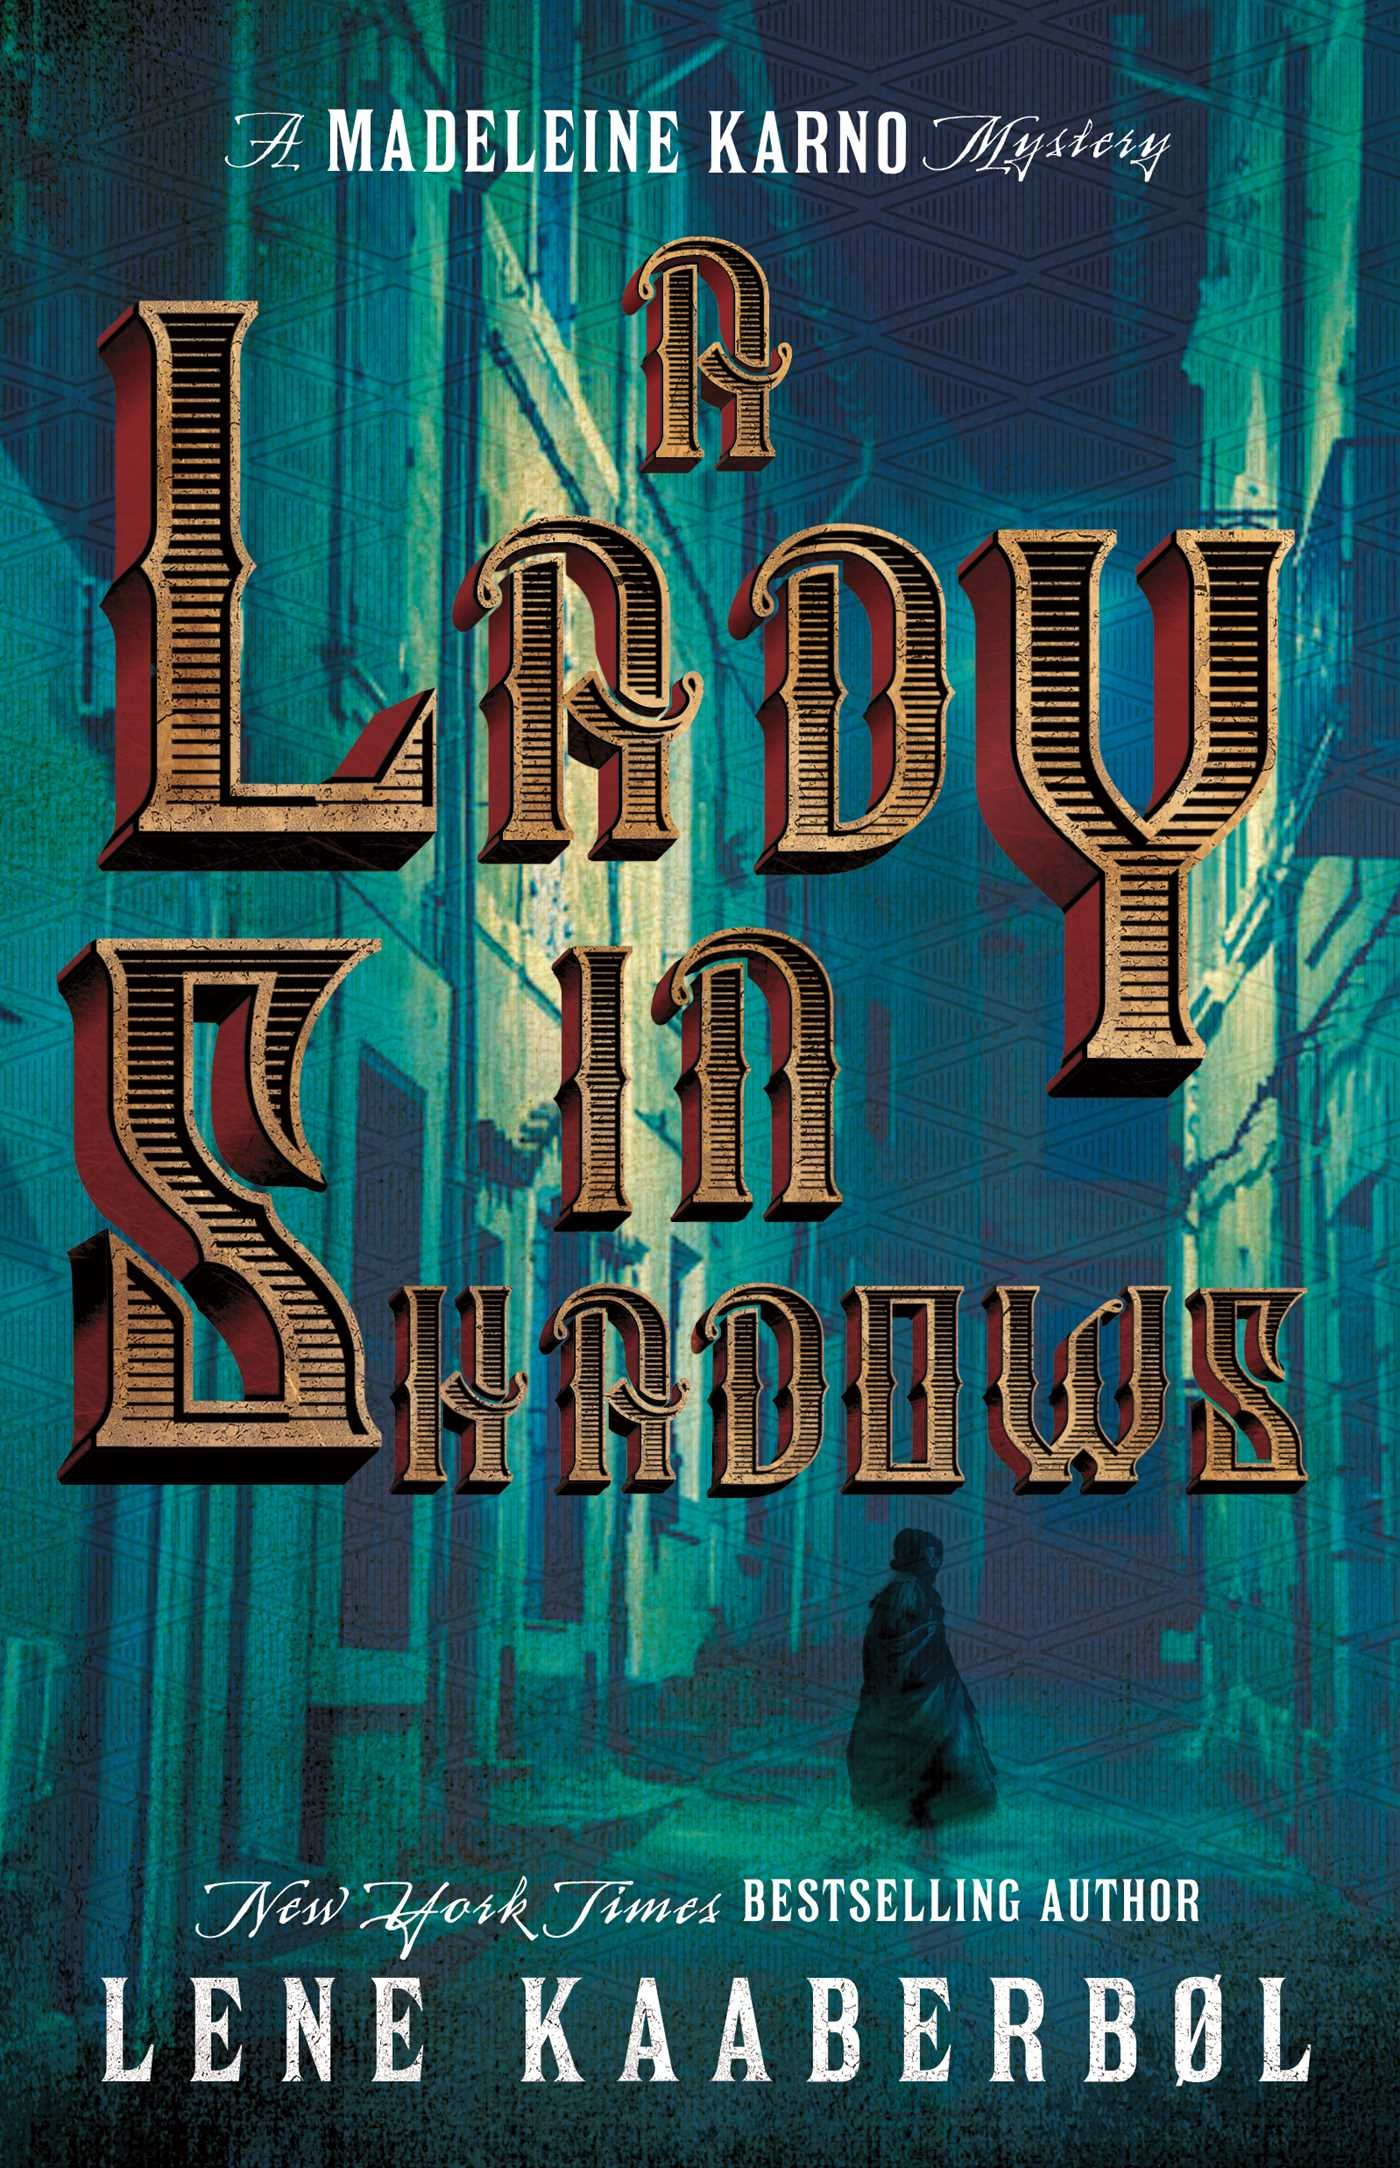 A Lady In Shadows Madeleine Karno Mystery Paperback December 5 2017